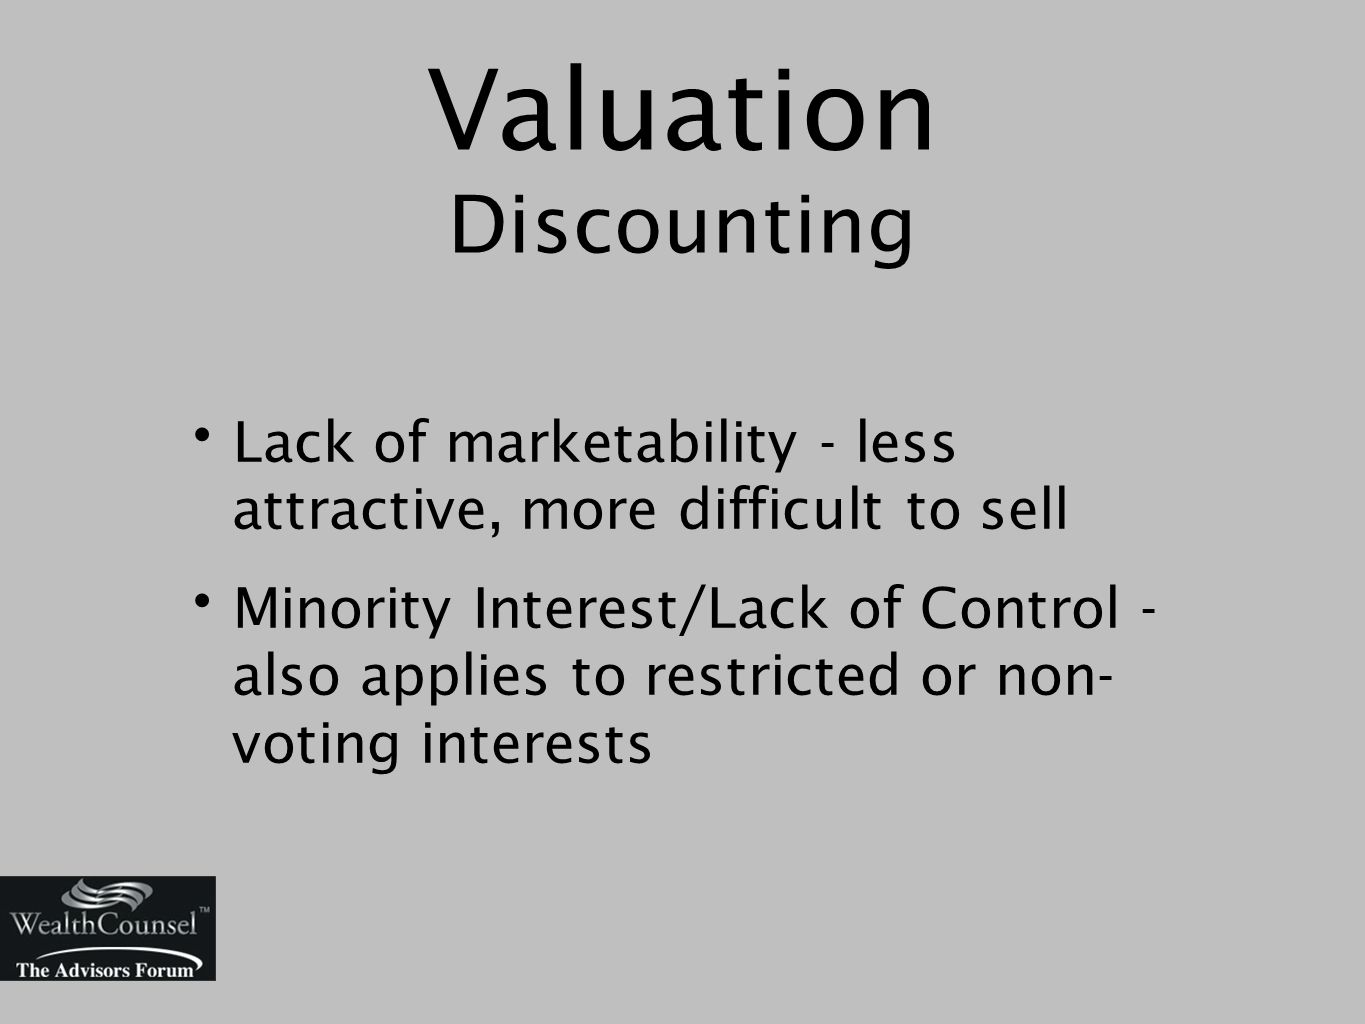 Valuation Discounting Lack of marketability - less attractive, more difficult to sell Minority Interest/Lack of Control - also applies to restricted or non- voting interests